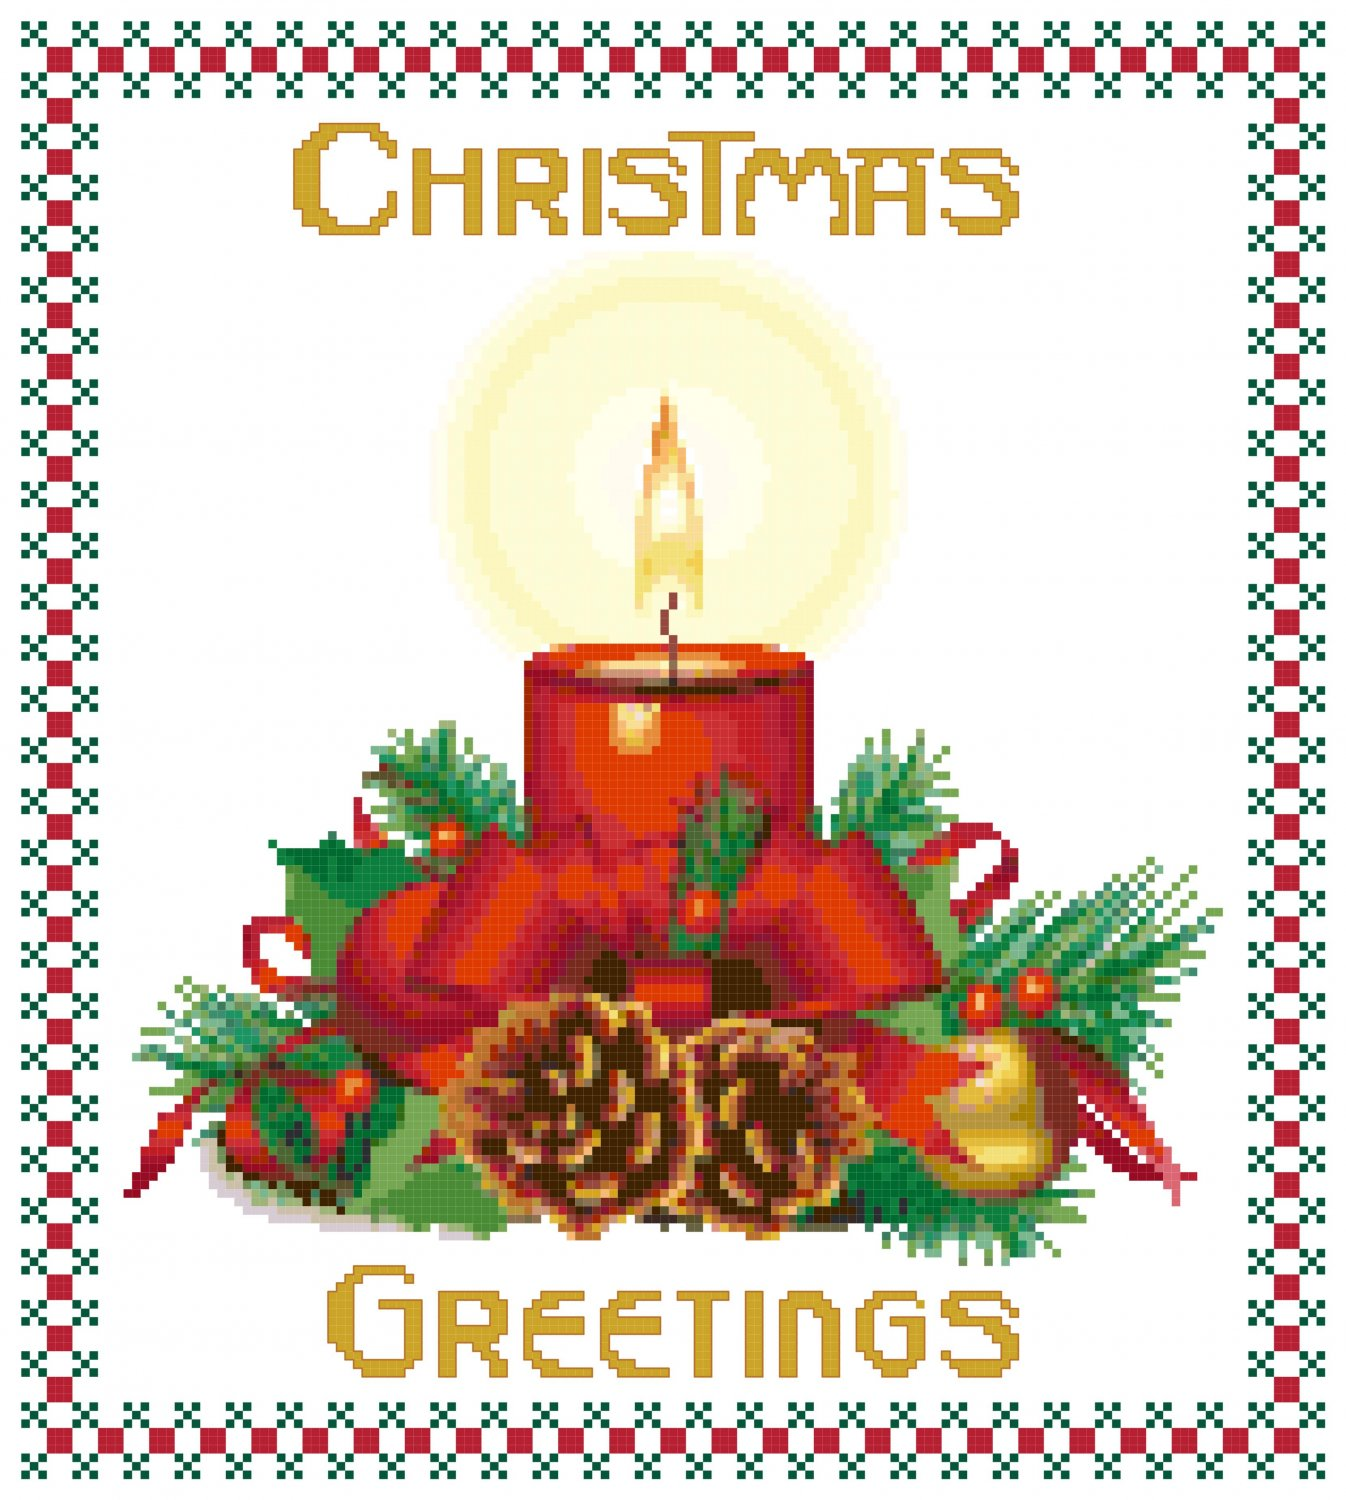 Christmas Greetings Cross Stitch Pattern Chart Graph